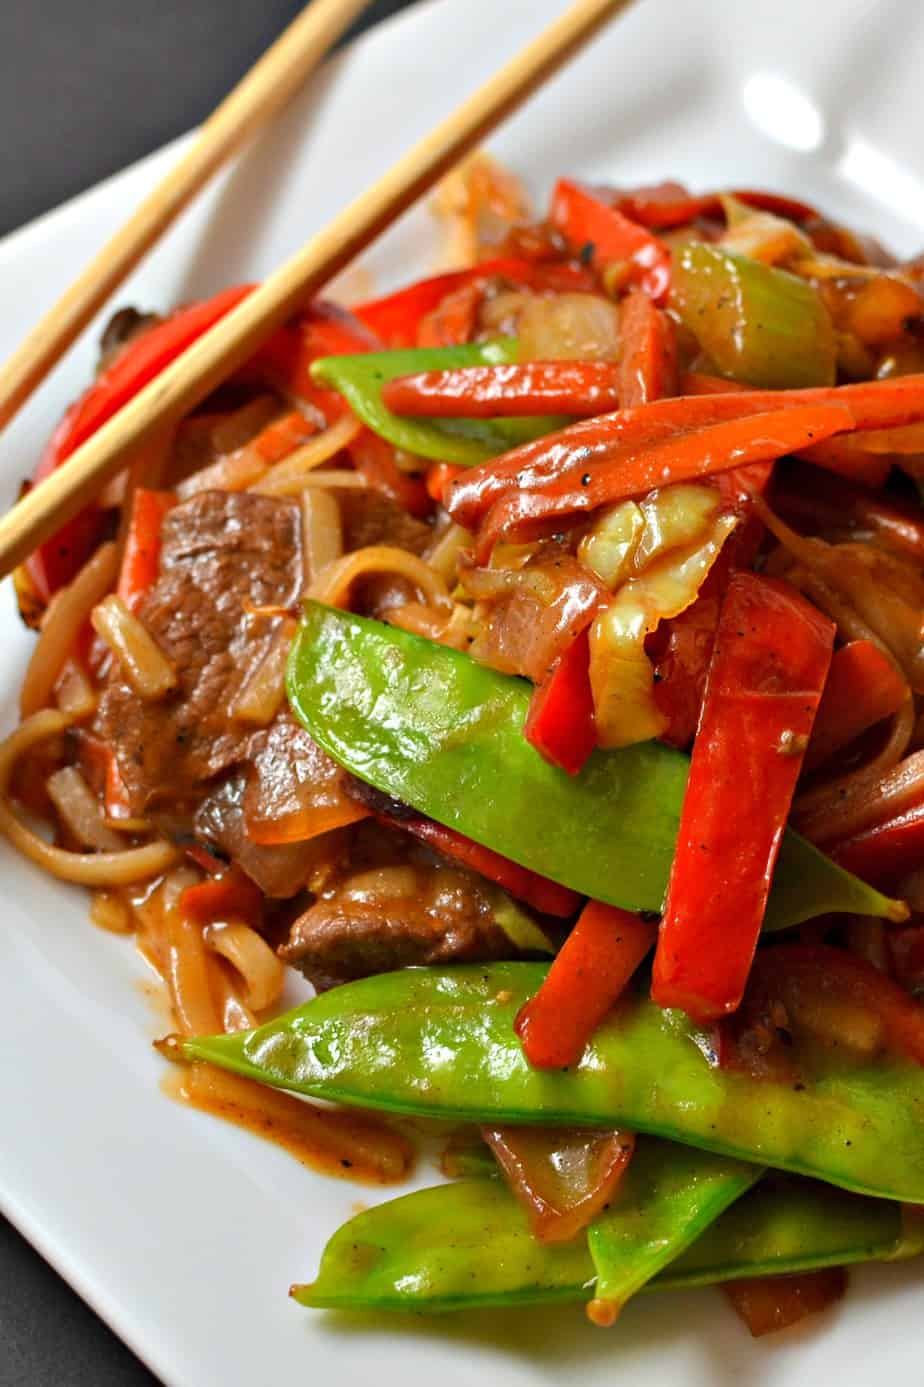 This Beef Lo Mein combines beef, onions, peppers, carrots, snow peas and noodles in a slightly spicy ginger soy sauce.